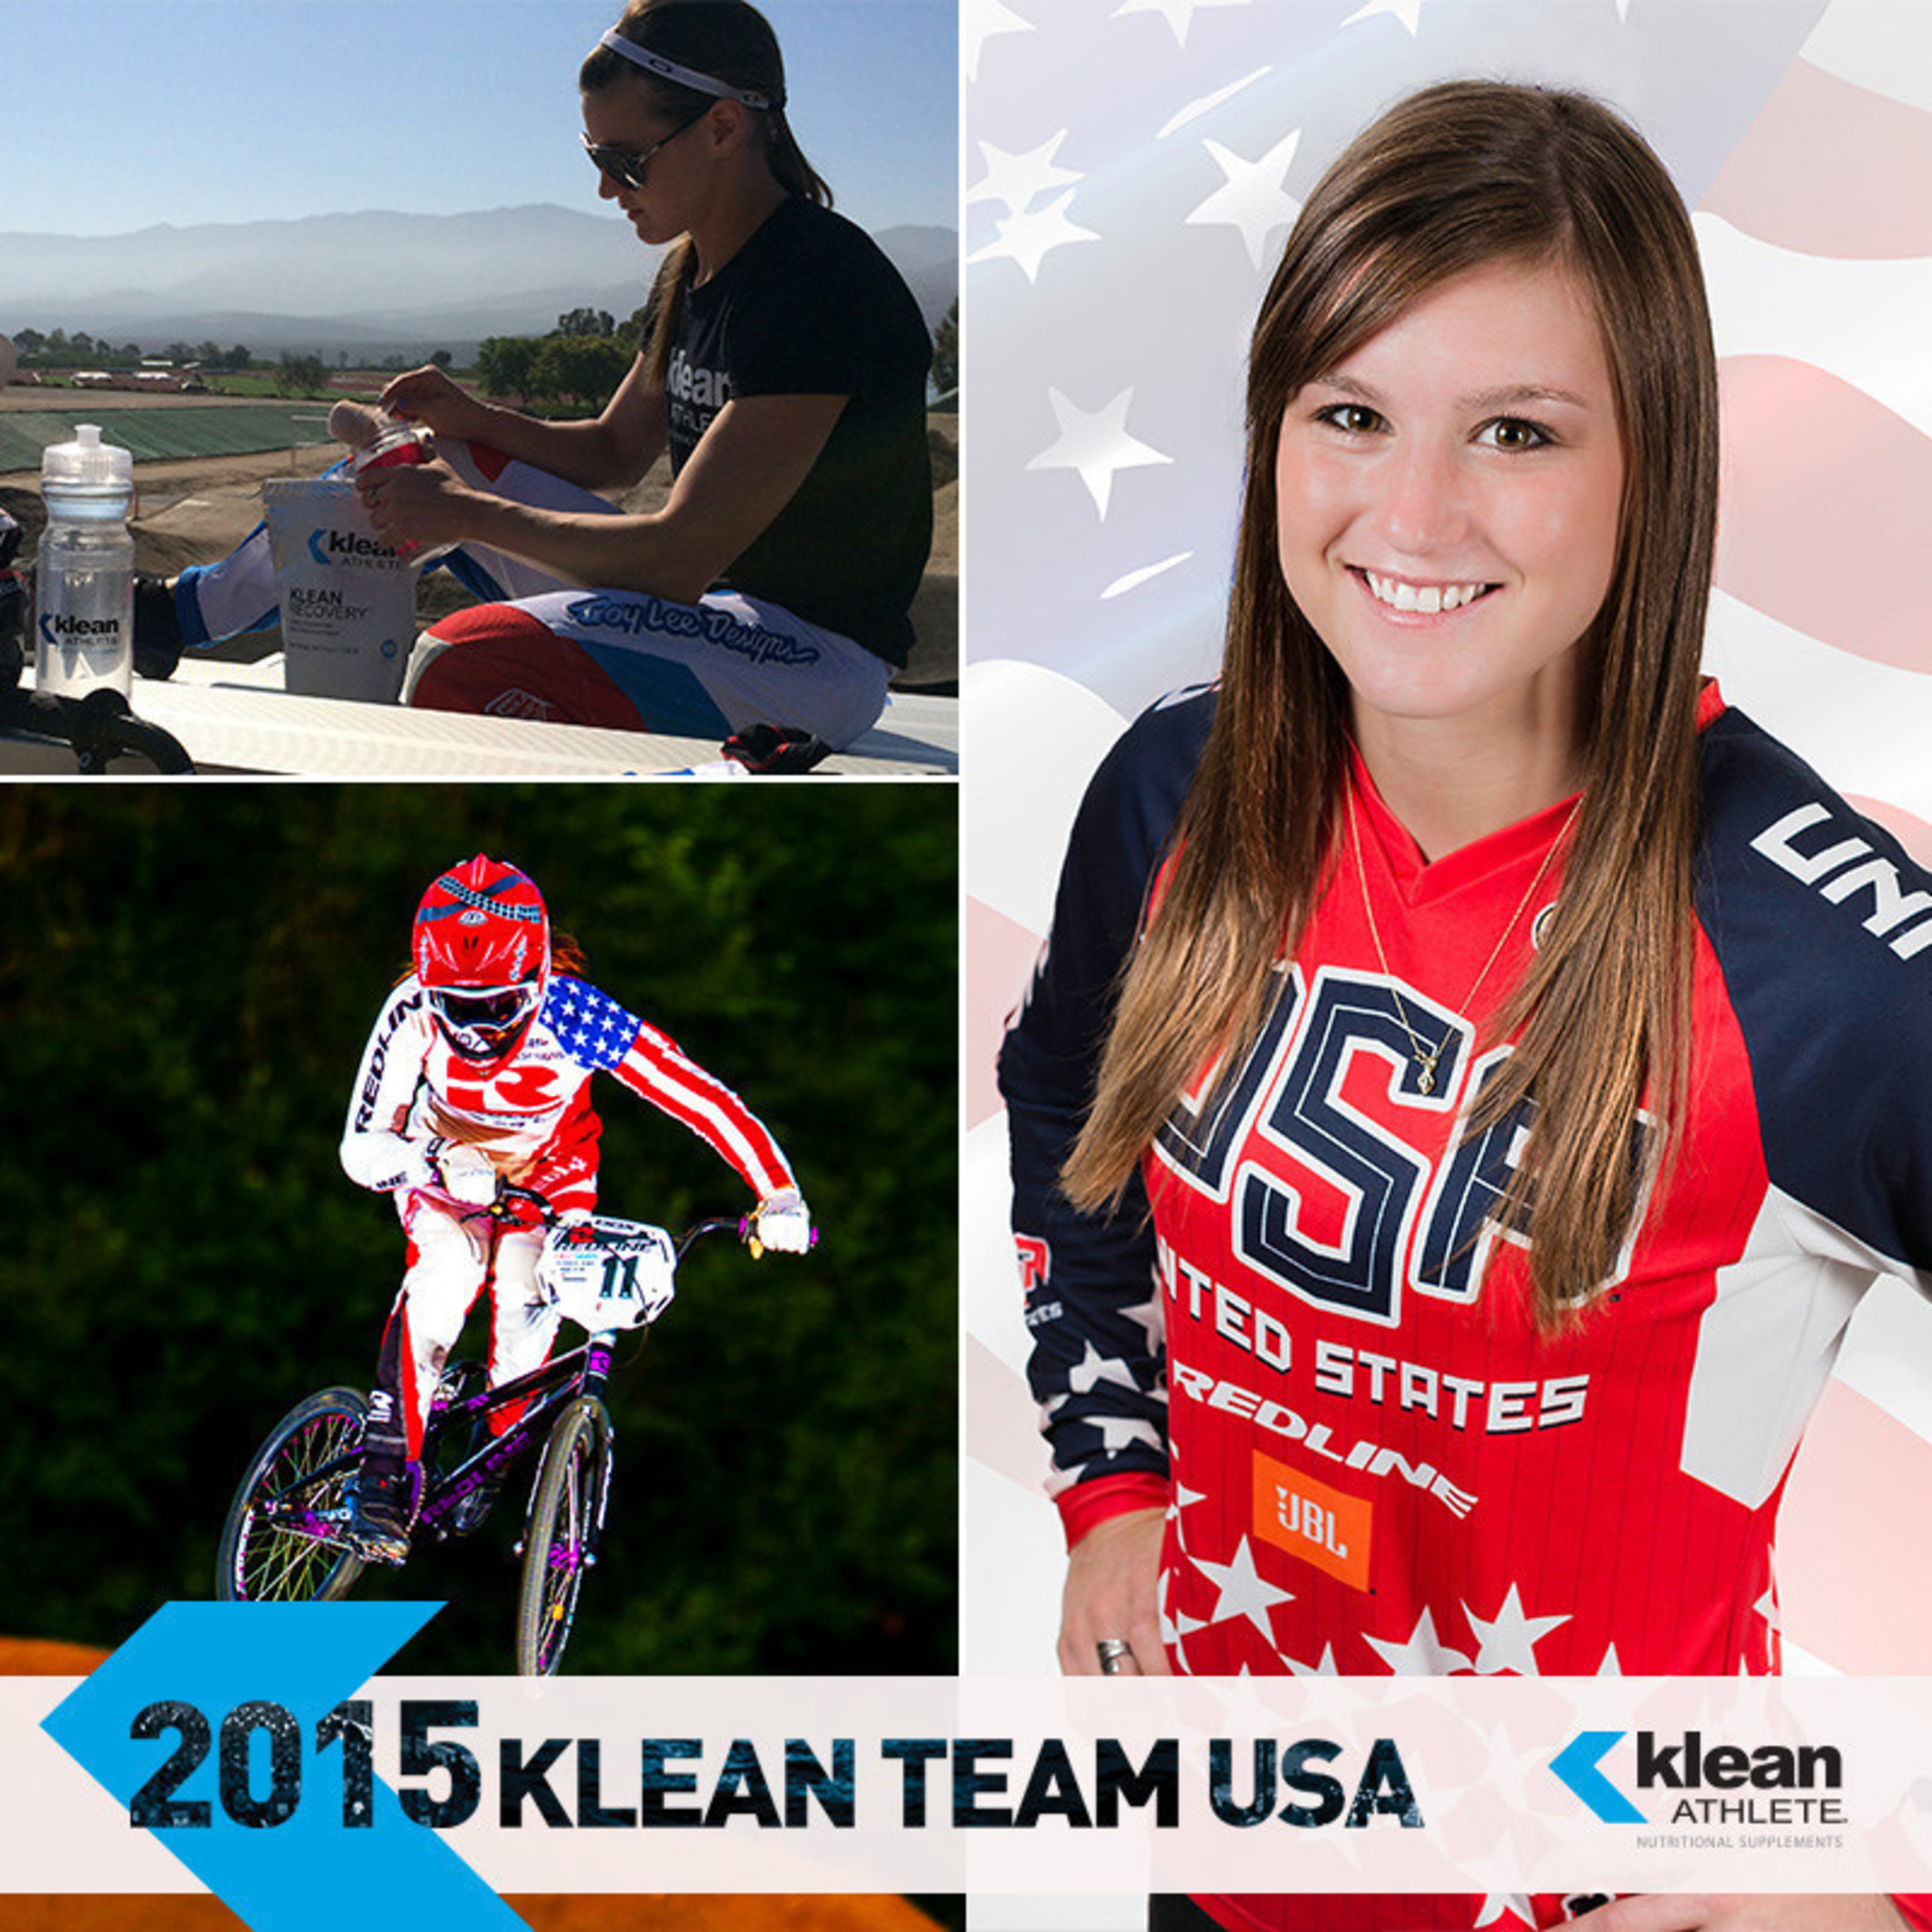 BMX Pro Alise Post Joins the 2015 Klean Team USA, sponsored by Klean Athlete. Learn more at www.kleanathlete.com